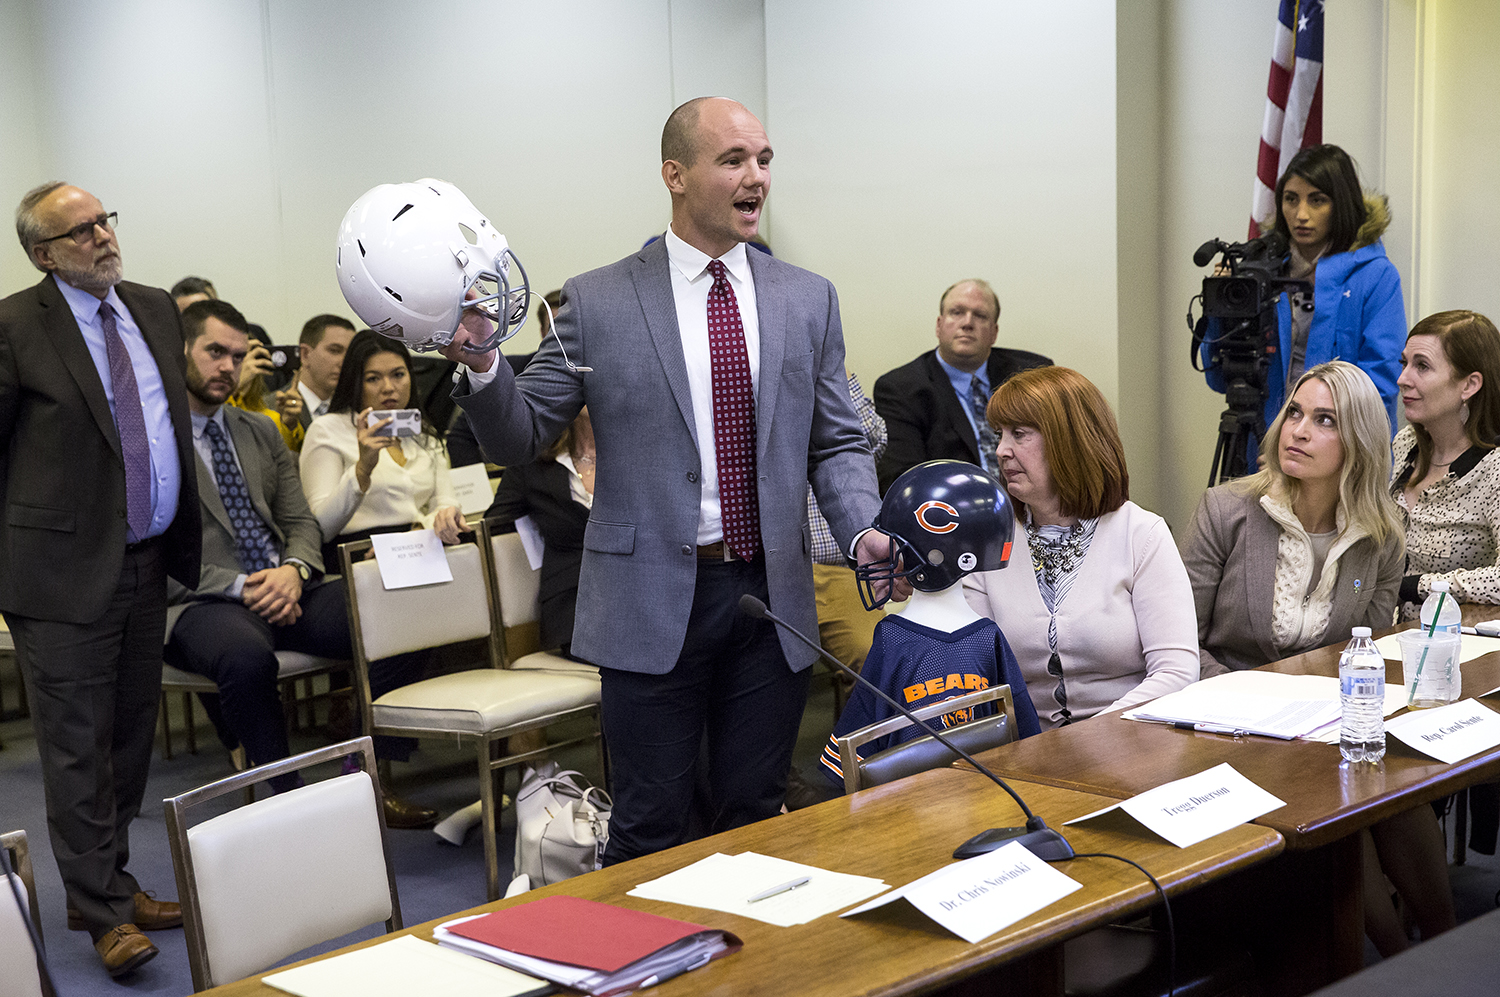 Chris Borland, a former NFL linebacker and Big Ten Defensive Player of the Year for the University of Wisconsin, testified before the Illinois House Mental Health Committee hearing on House Bill 4341, which would ban tackle football for kids under 12 years of age Thursday, March 1, 2018 at the Stratton Building in Springfield, Ill. Borland was illustrating how repetitive sub-concussive hits that begin when children play impact sports can be as dangerous as a single hit that results in a concussion. [Rich Saal/The State Journal-Register]